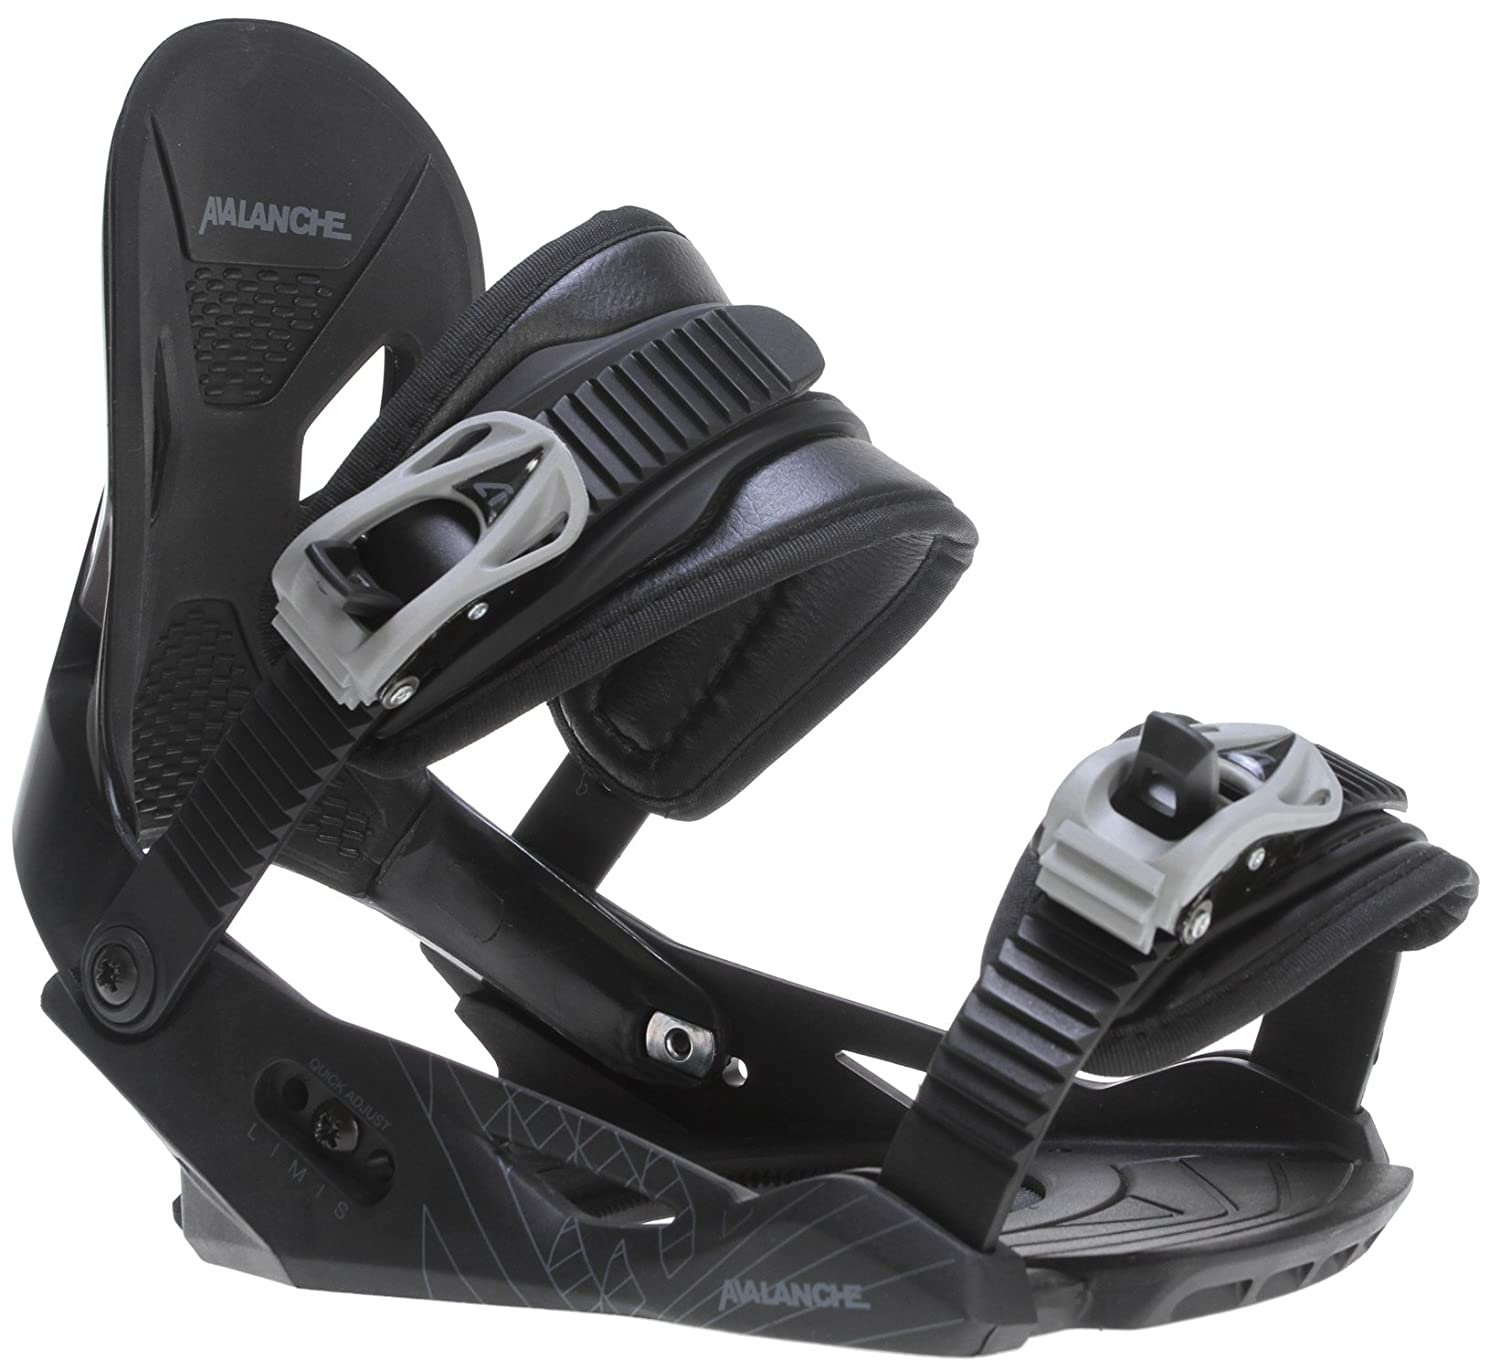 Top 10 Best Snowboard Bindings (2020 Reviews & Buying Guide) 1